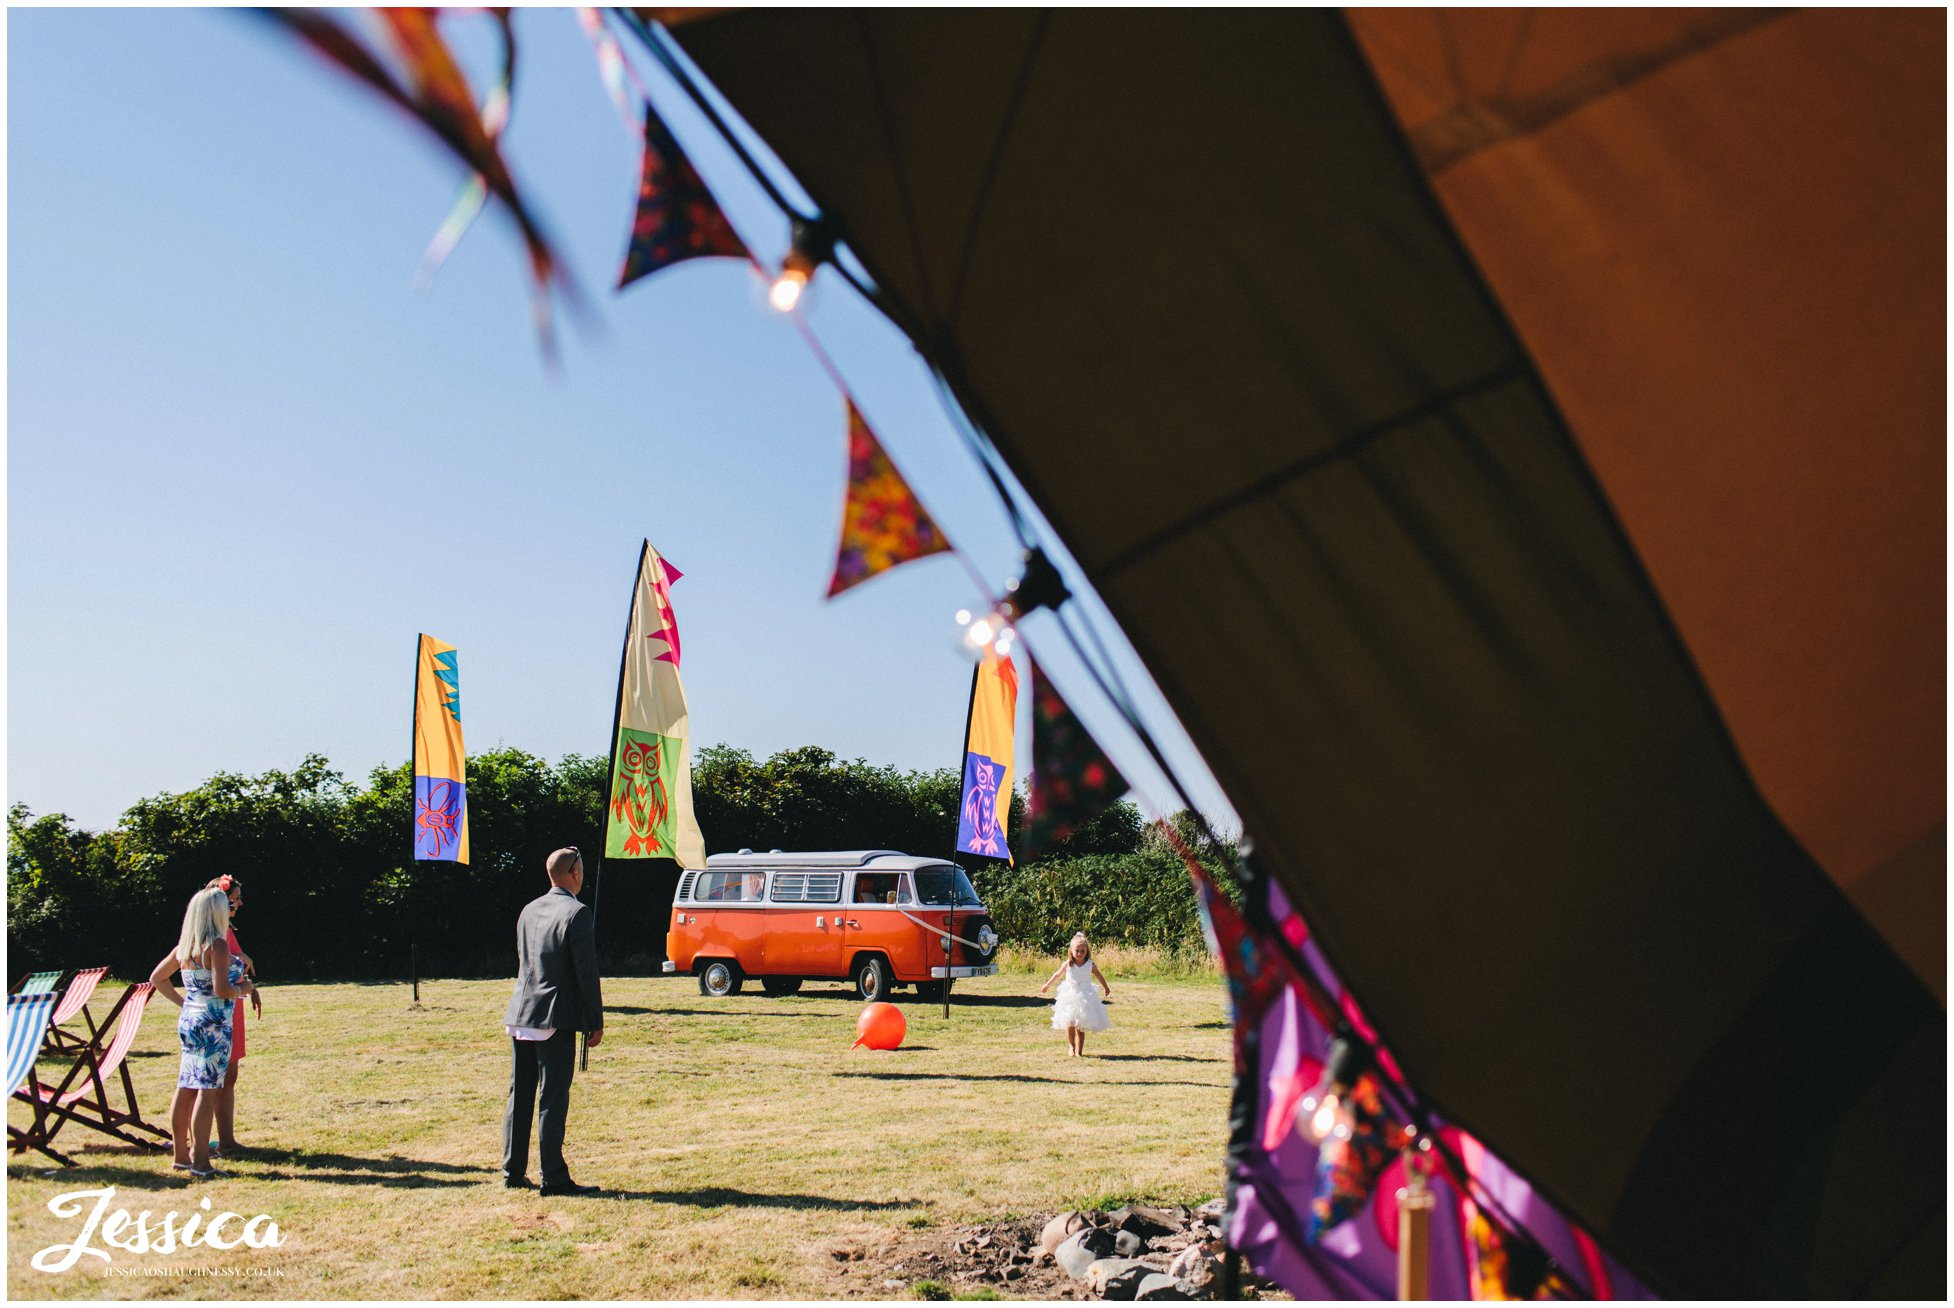 vw camper is parked on the field with the tipi